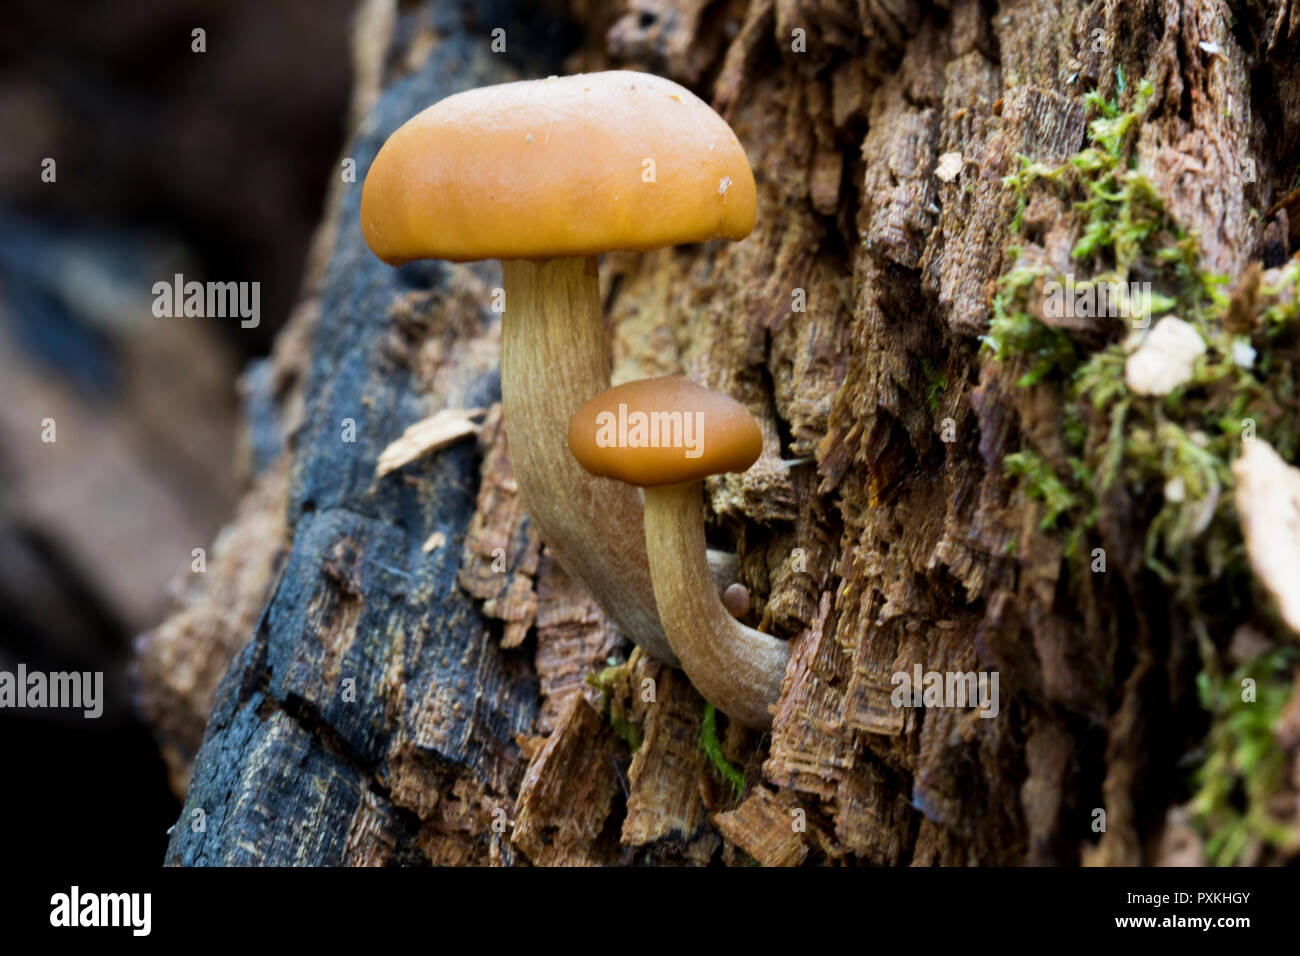 Toadstools sprouting from dead wood. Close up of mushroom fungus. Little mushrooms growing in the forest. Stock Photo